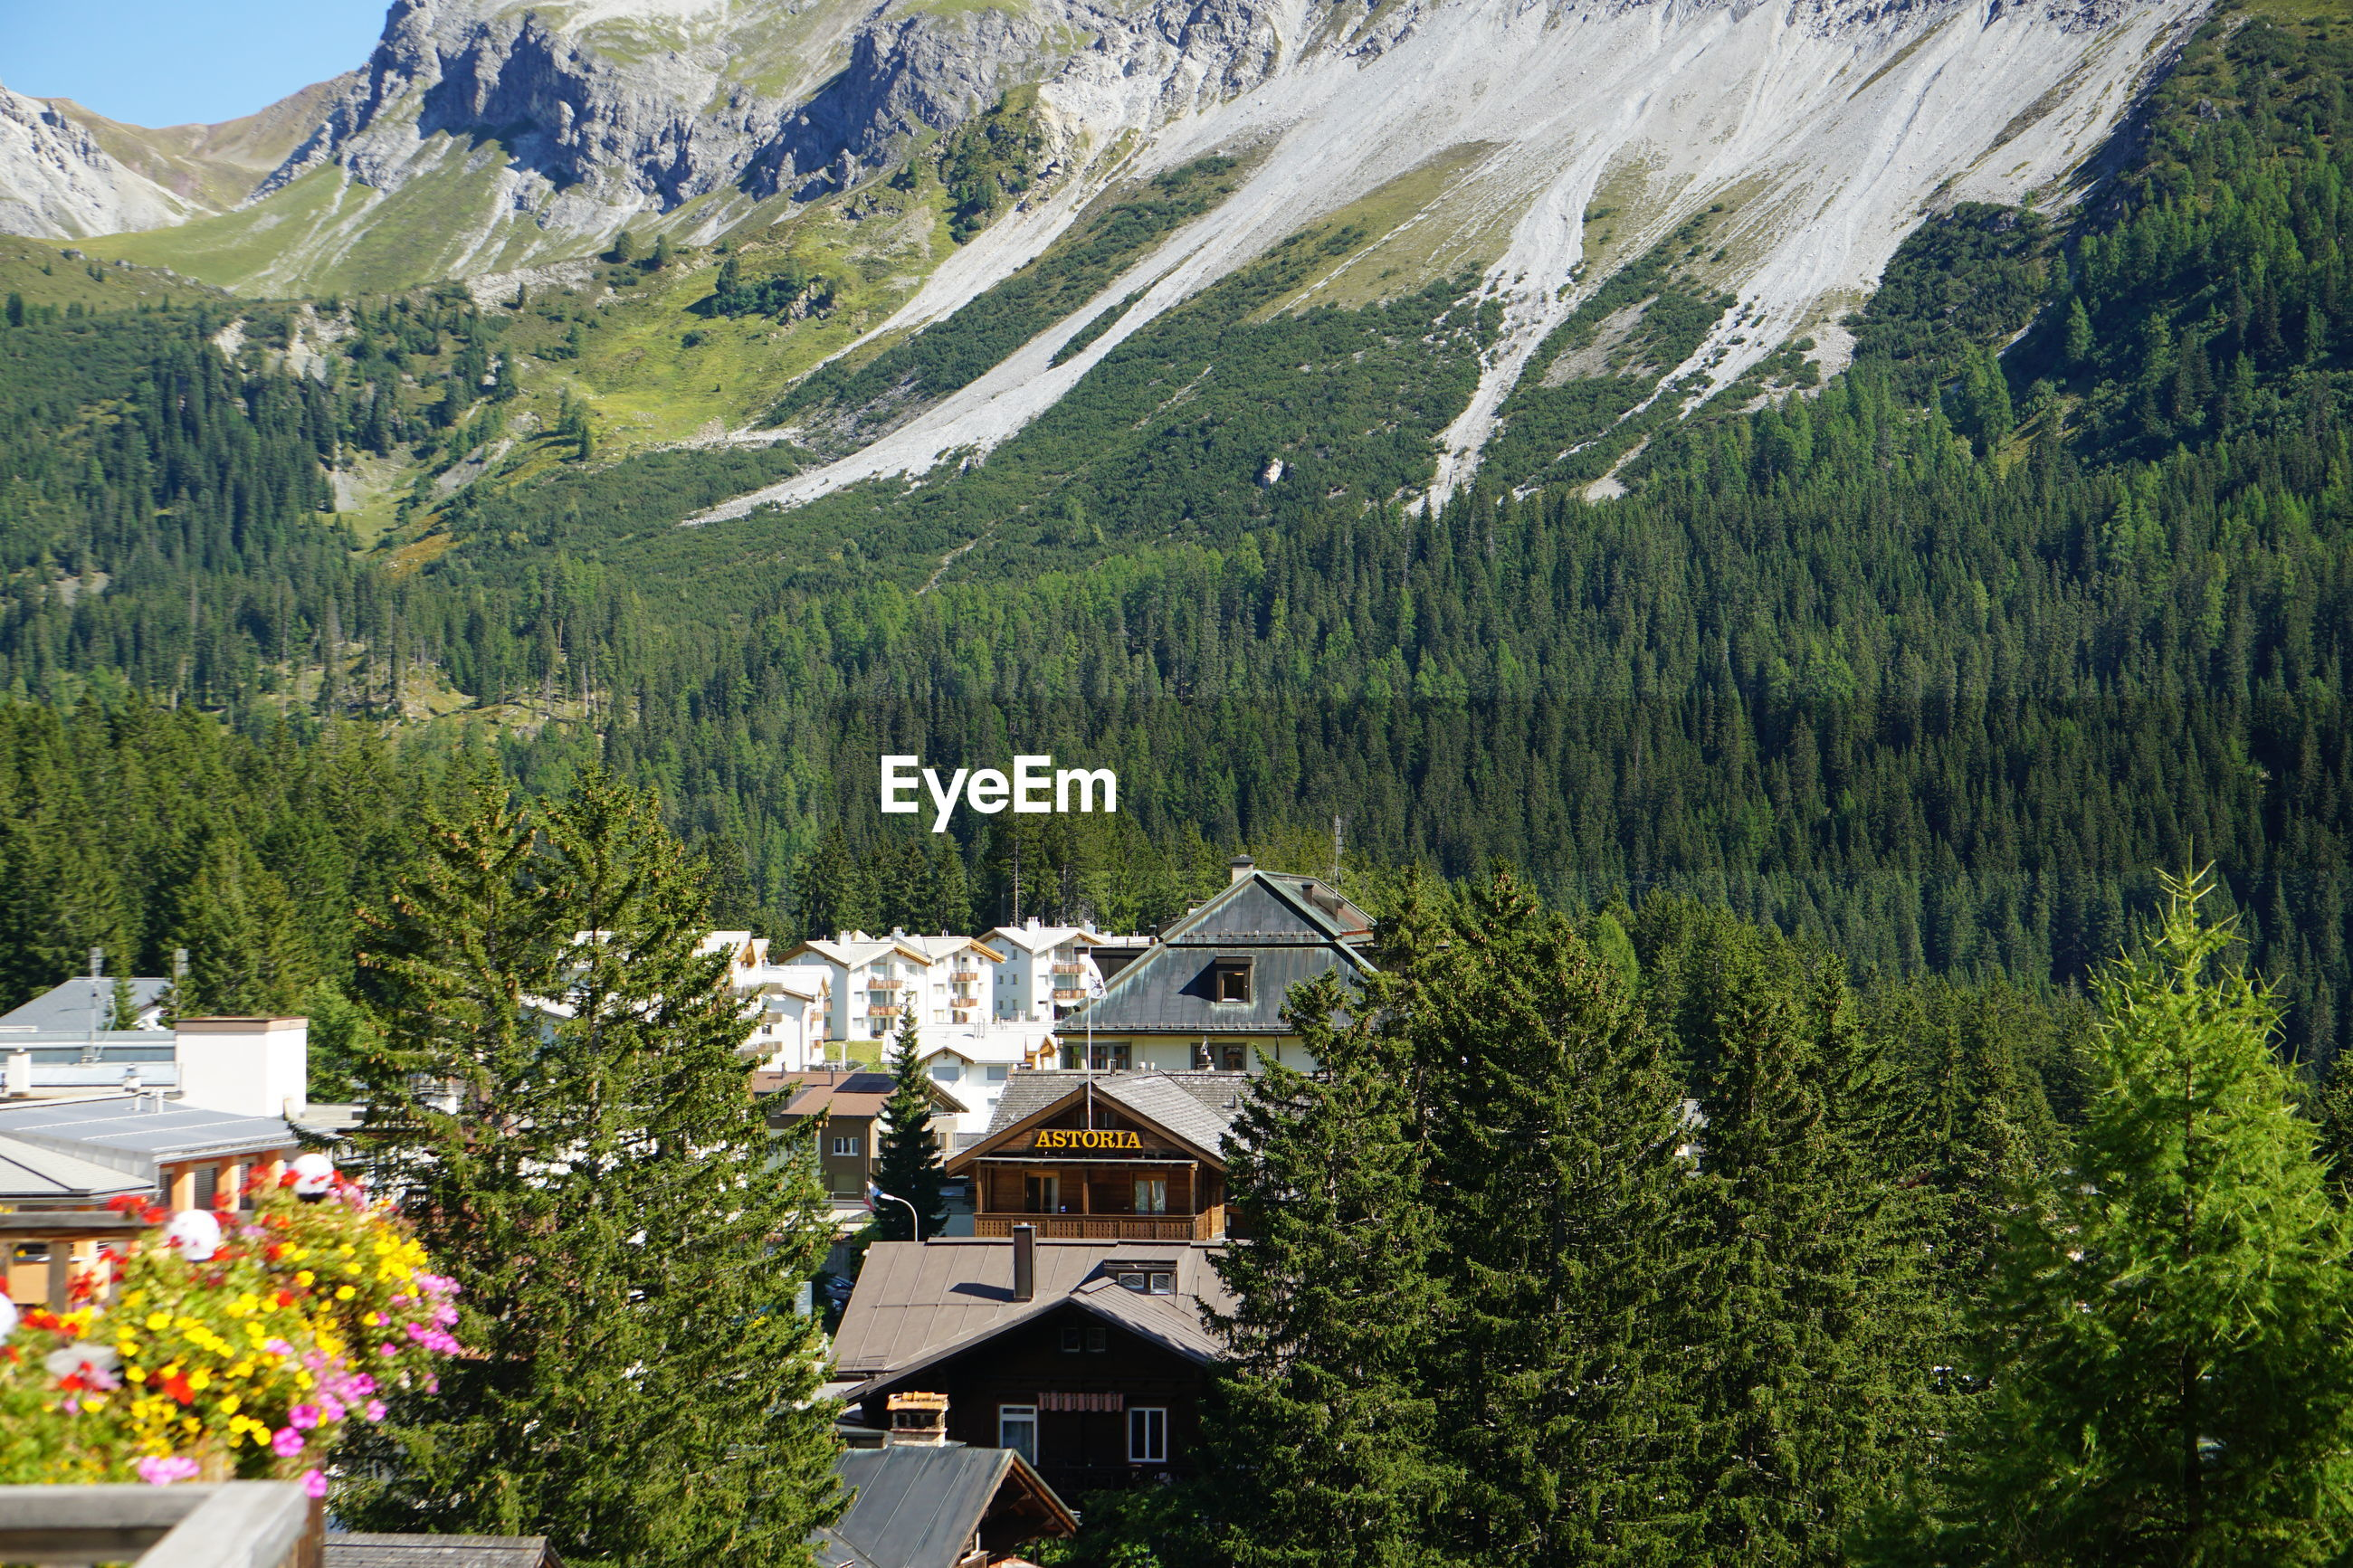 HIGH ANGLE VIEW OF TREES AND BUILDINGS AGAINST MOUNTAINS